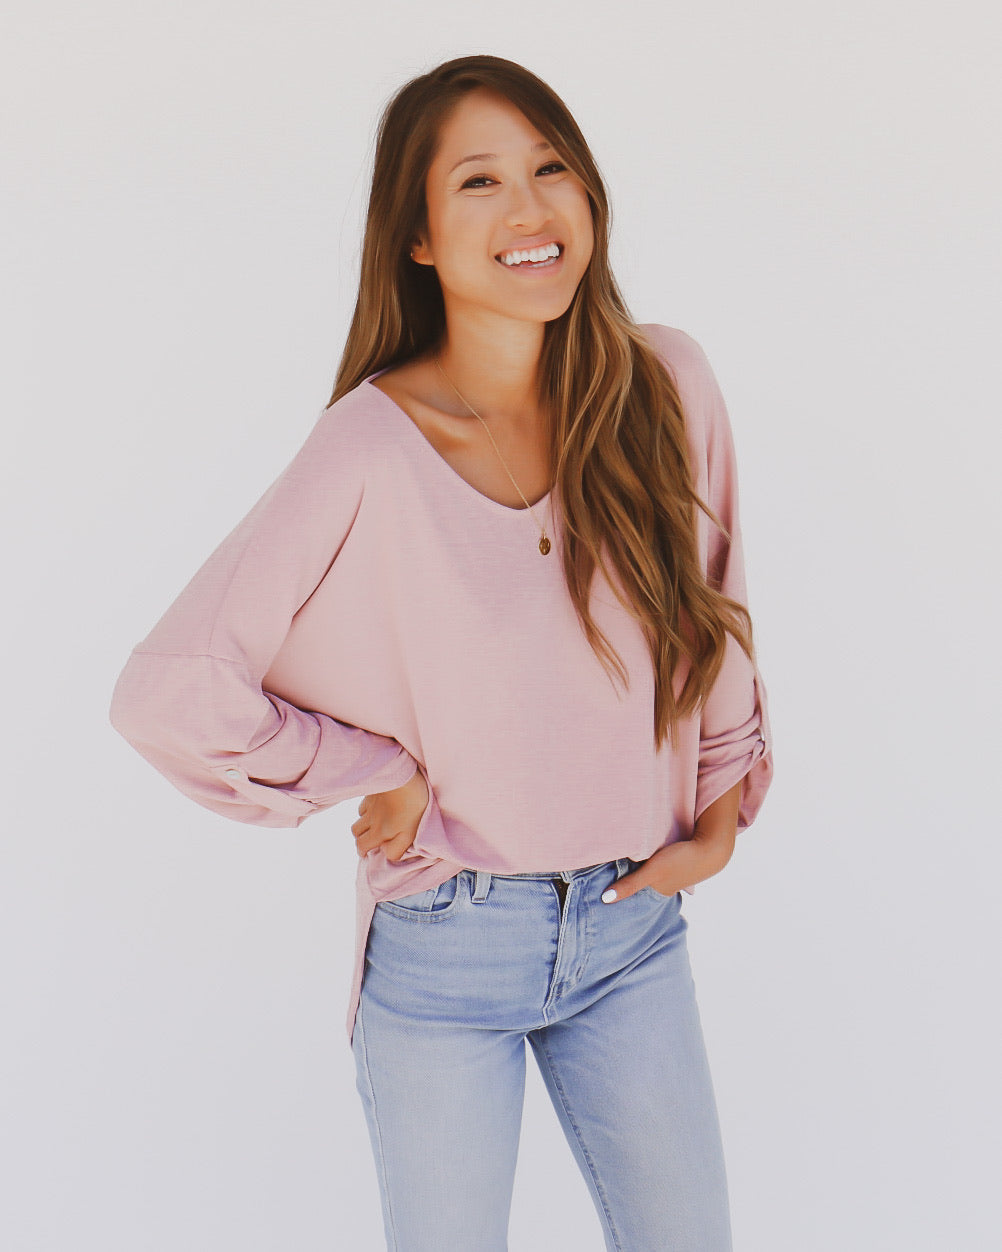 Brogan Top in Blush